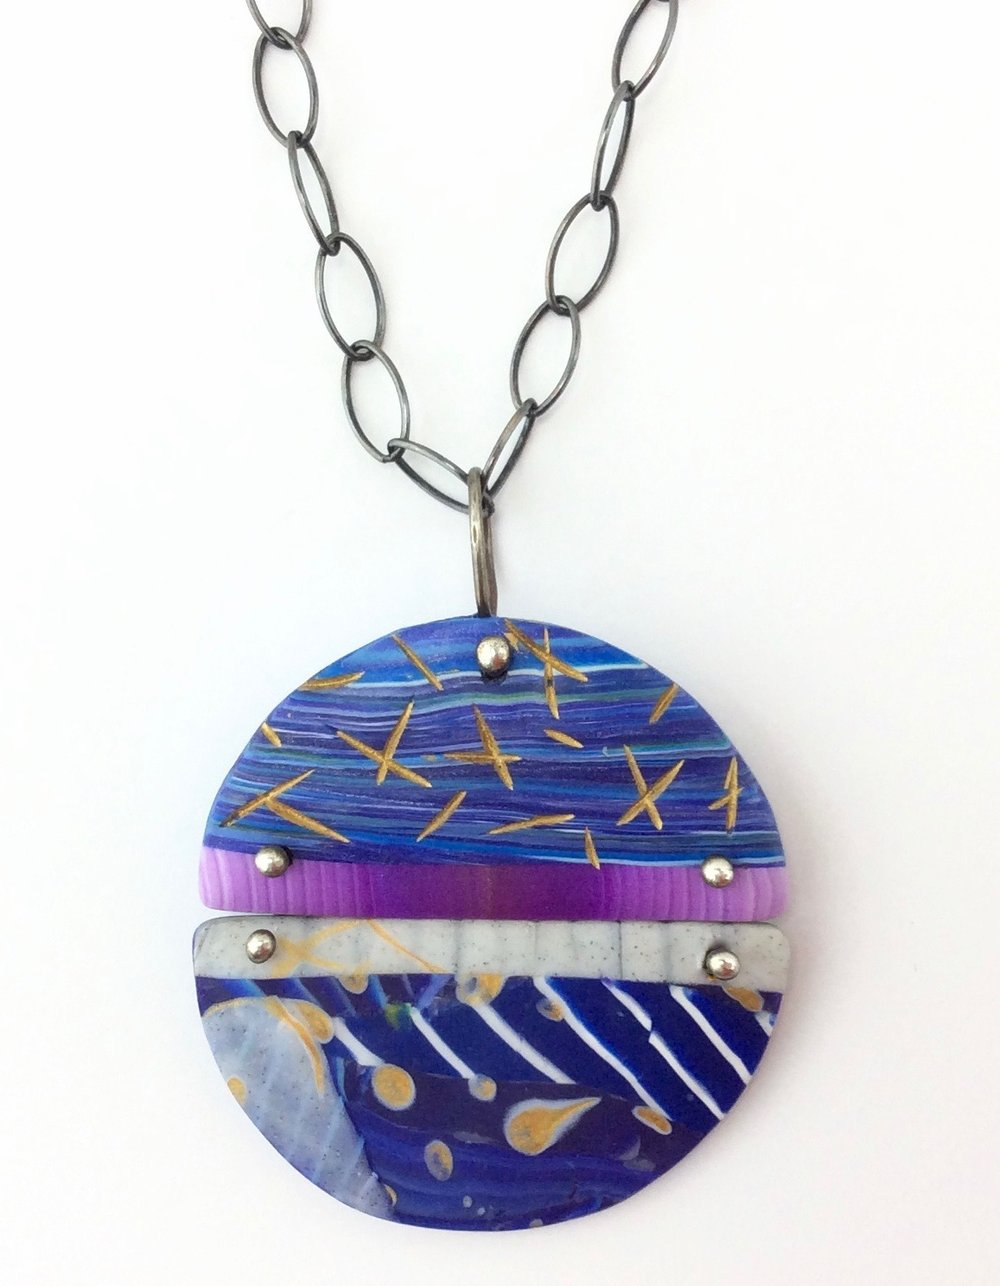 """Dancing Pendant  polymer clay millefiori marquetry, argentium silver, patinated sterling silver chain with fabricated sterling silver hook ,acrylic paint  30"""" L x 2"""" W x 2"""" H  2018"""